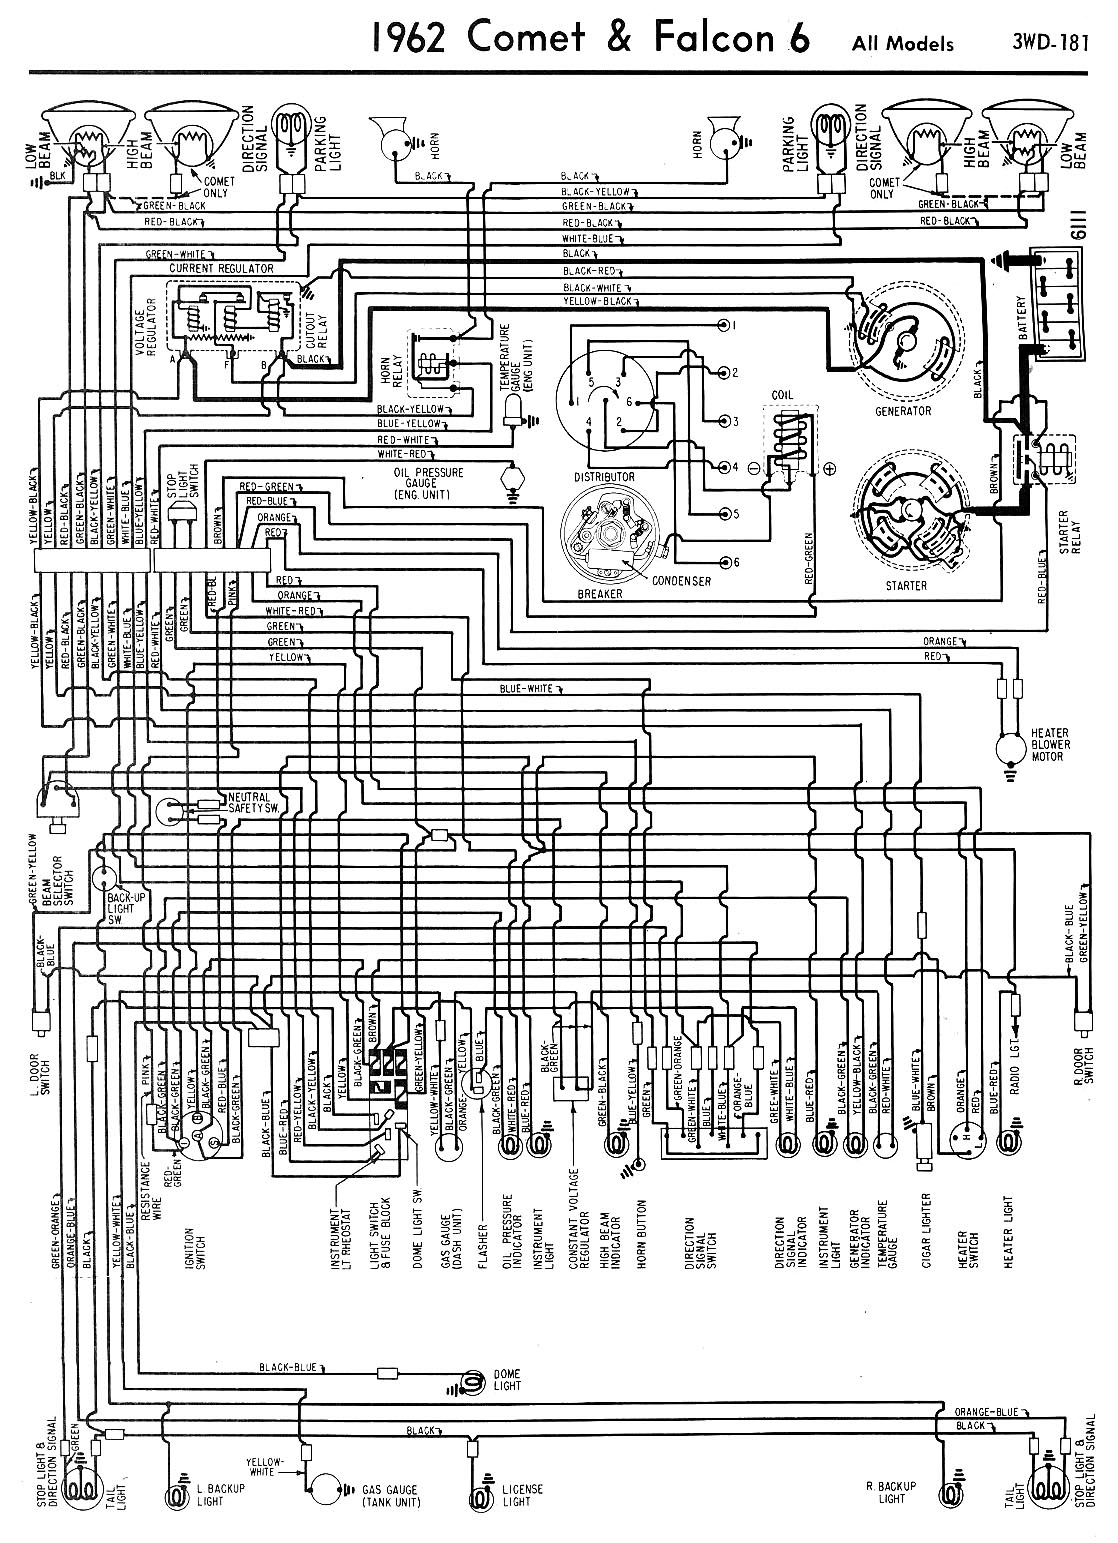 falcon diagrams wiring diagram of a 3 way switch wiring diagram for a 3 way switch with 2 lights #2